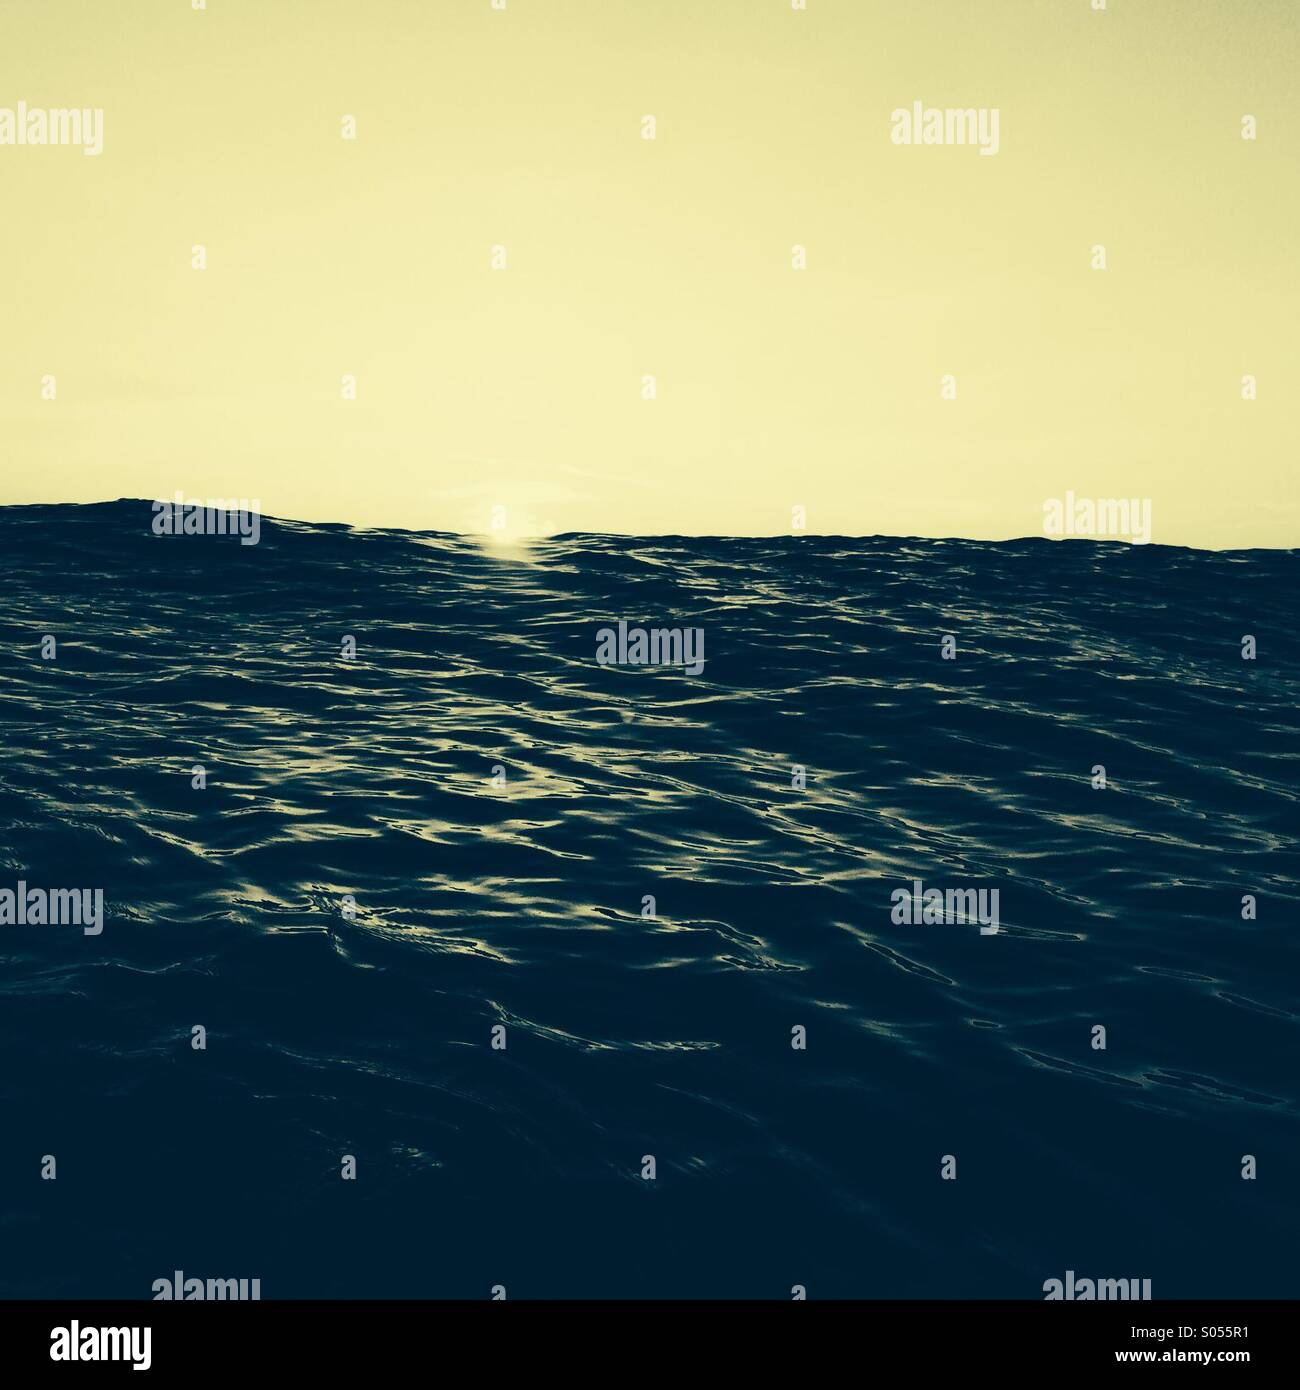 First light in the ocean as the sun appears on the horizon - Stock Image